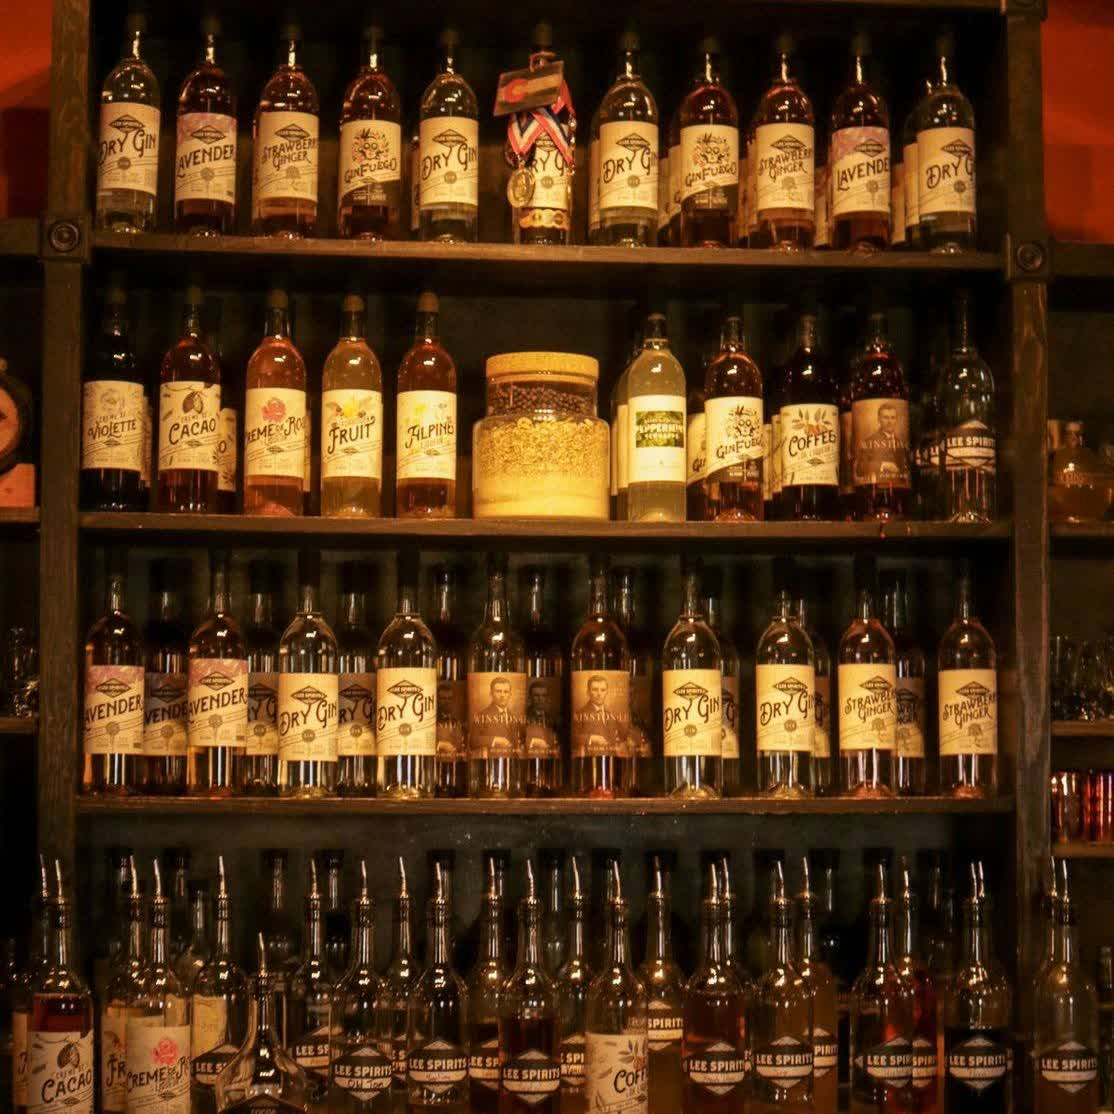 Lee Spirits - Colorado Springs, CO